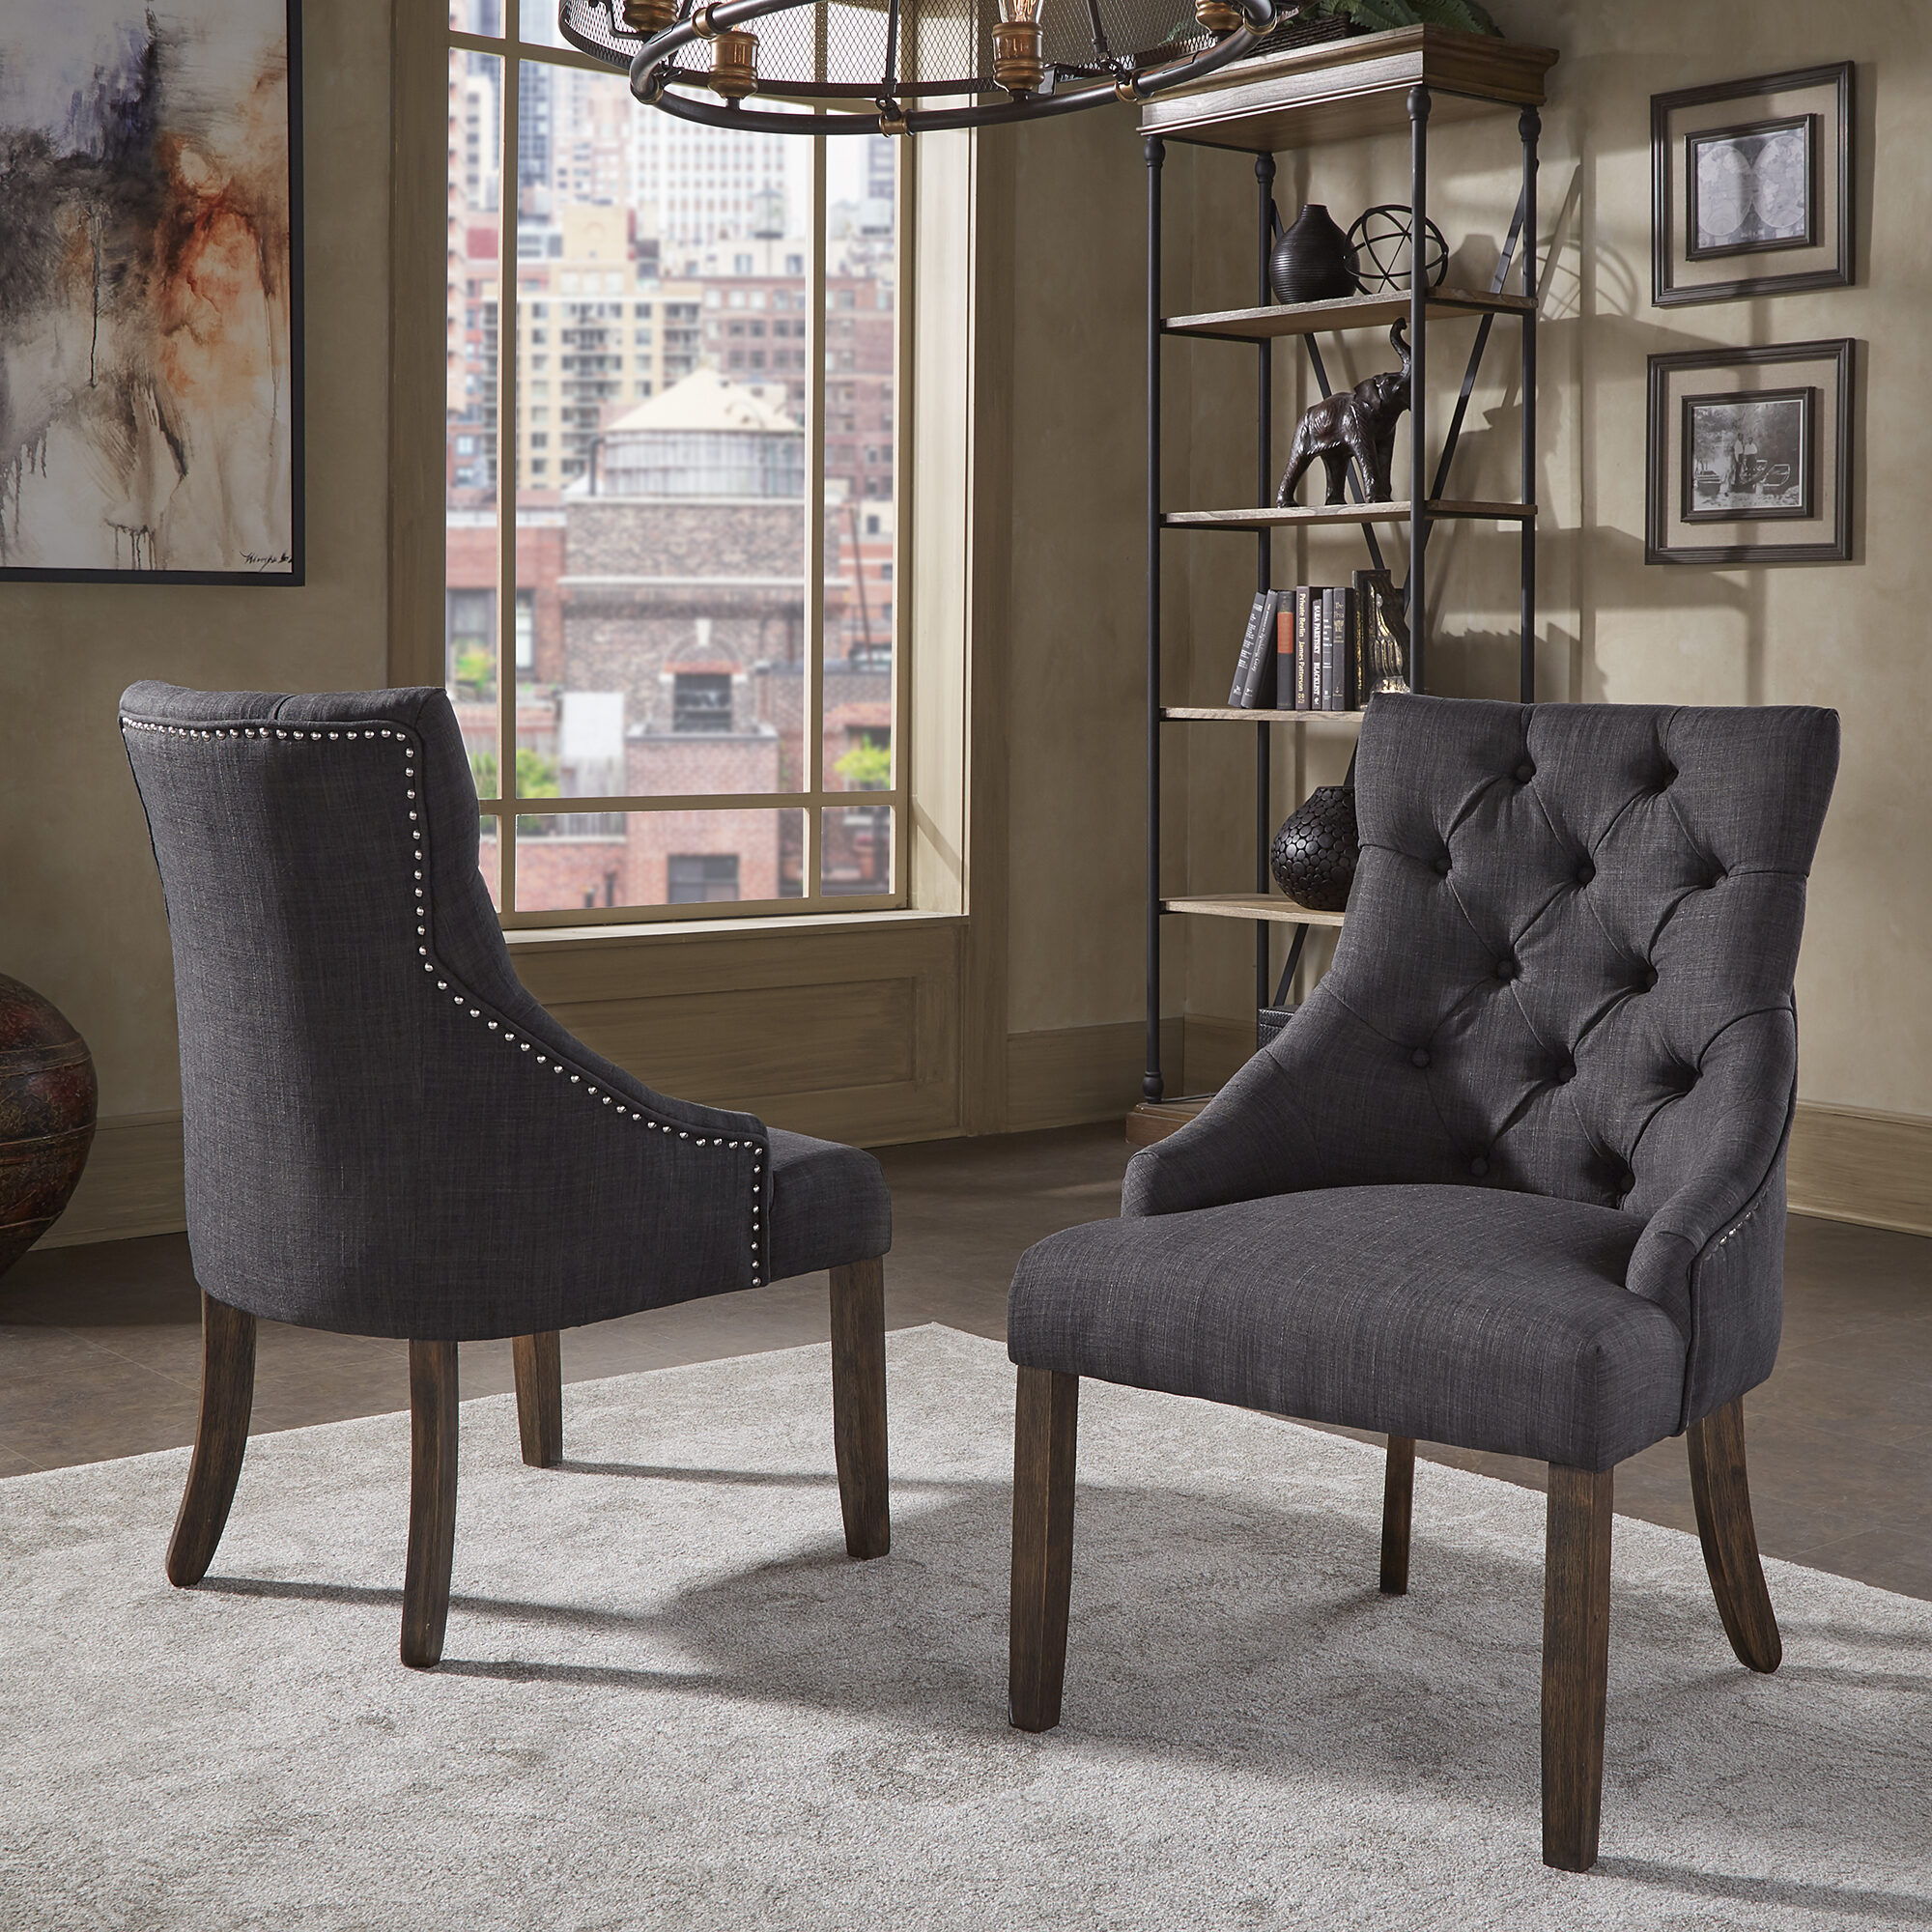 This is the companion to the desk: the chair. This is our Kimpton Linen Curved Back Tufted Dining Chair (Set of 2) by iNSPIRE Q Artisan. This chair has a button-tufted back, a curved wingback design, and linen upholstery. The linen upholstery comes in grey, dark grey, and beige. These chairs also have a brown finish on the exposed wooden legs.